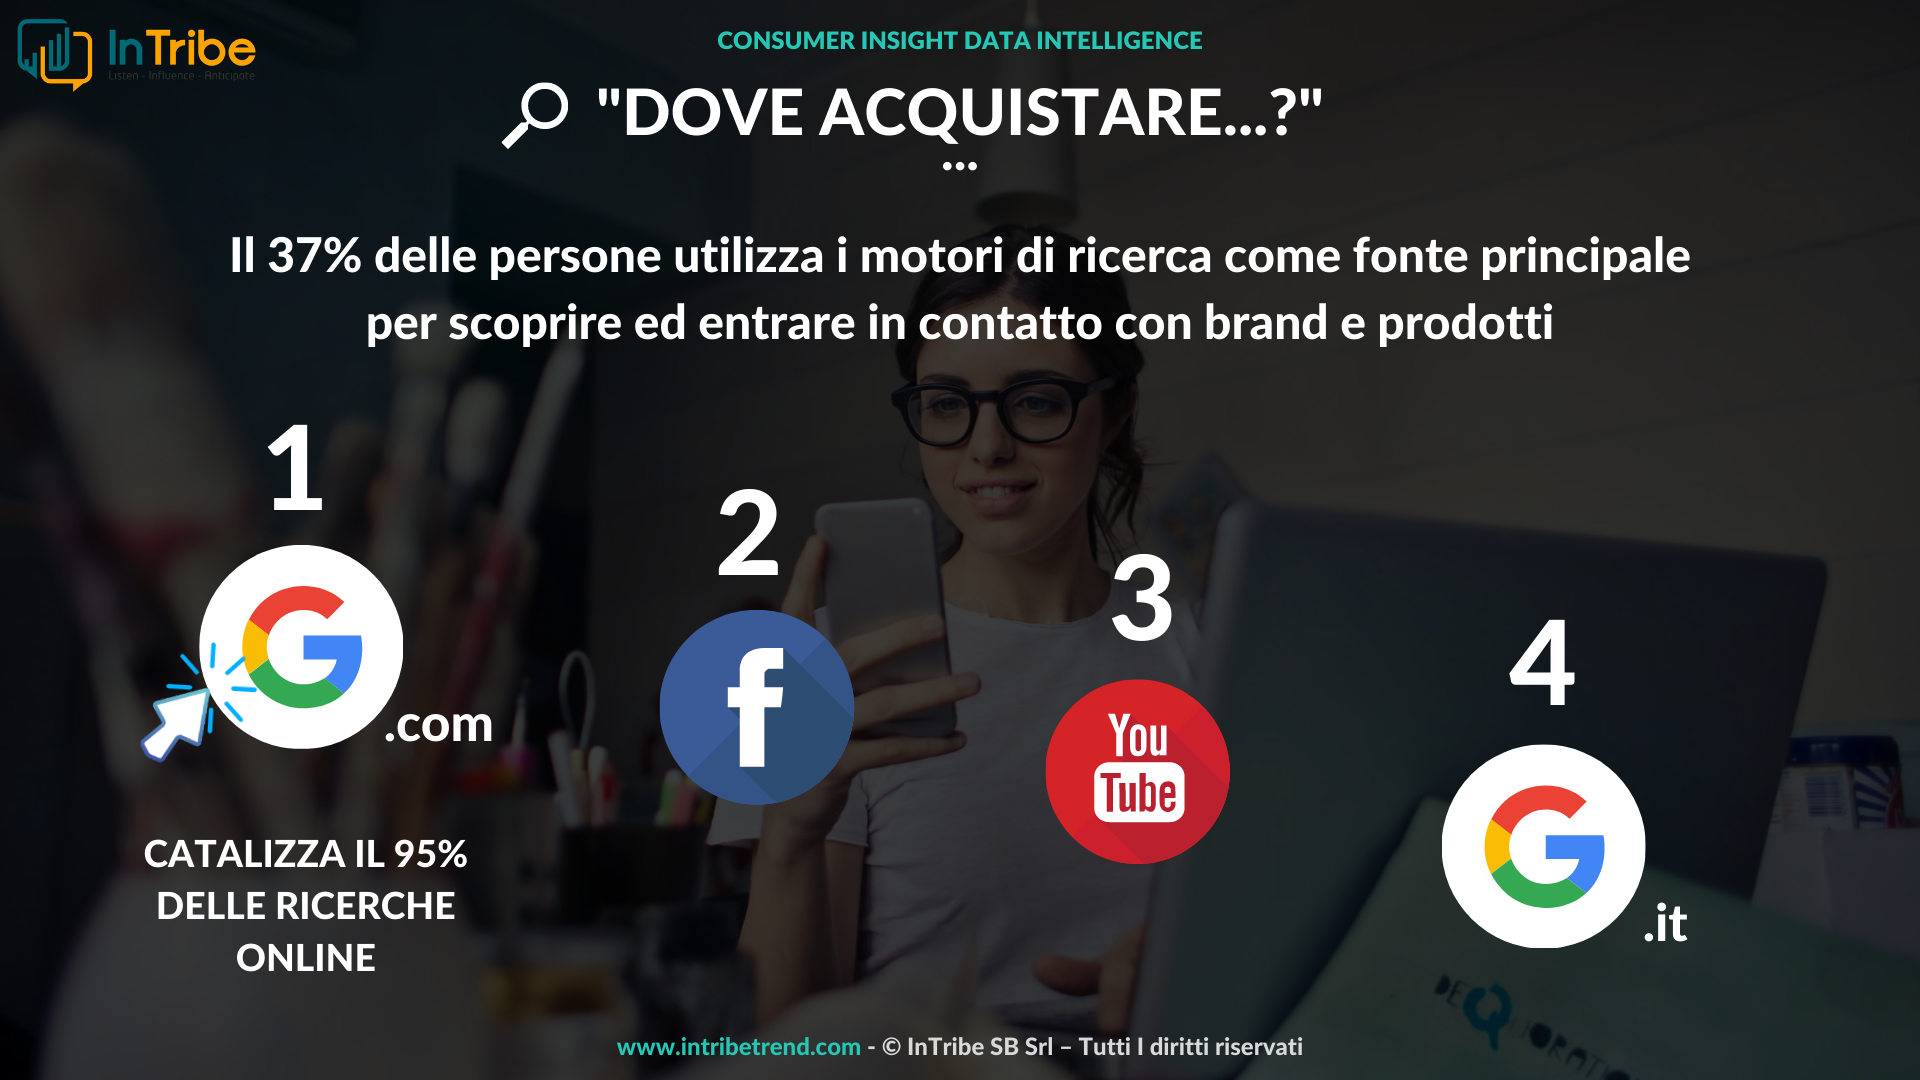 ropo-research-online-purchase-offline-acquisti-intribe-trend